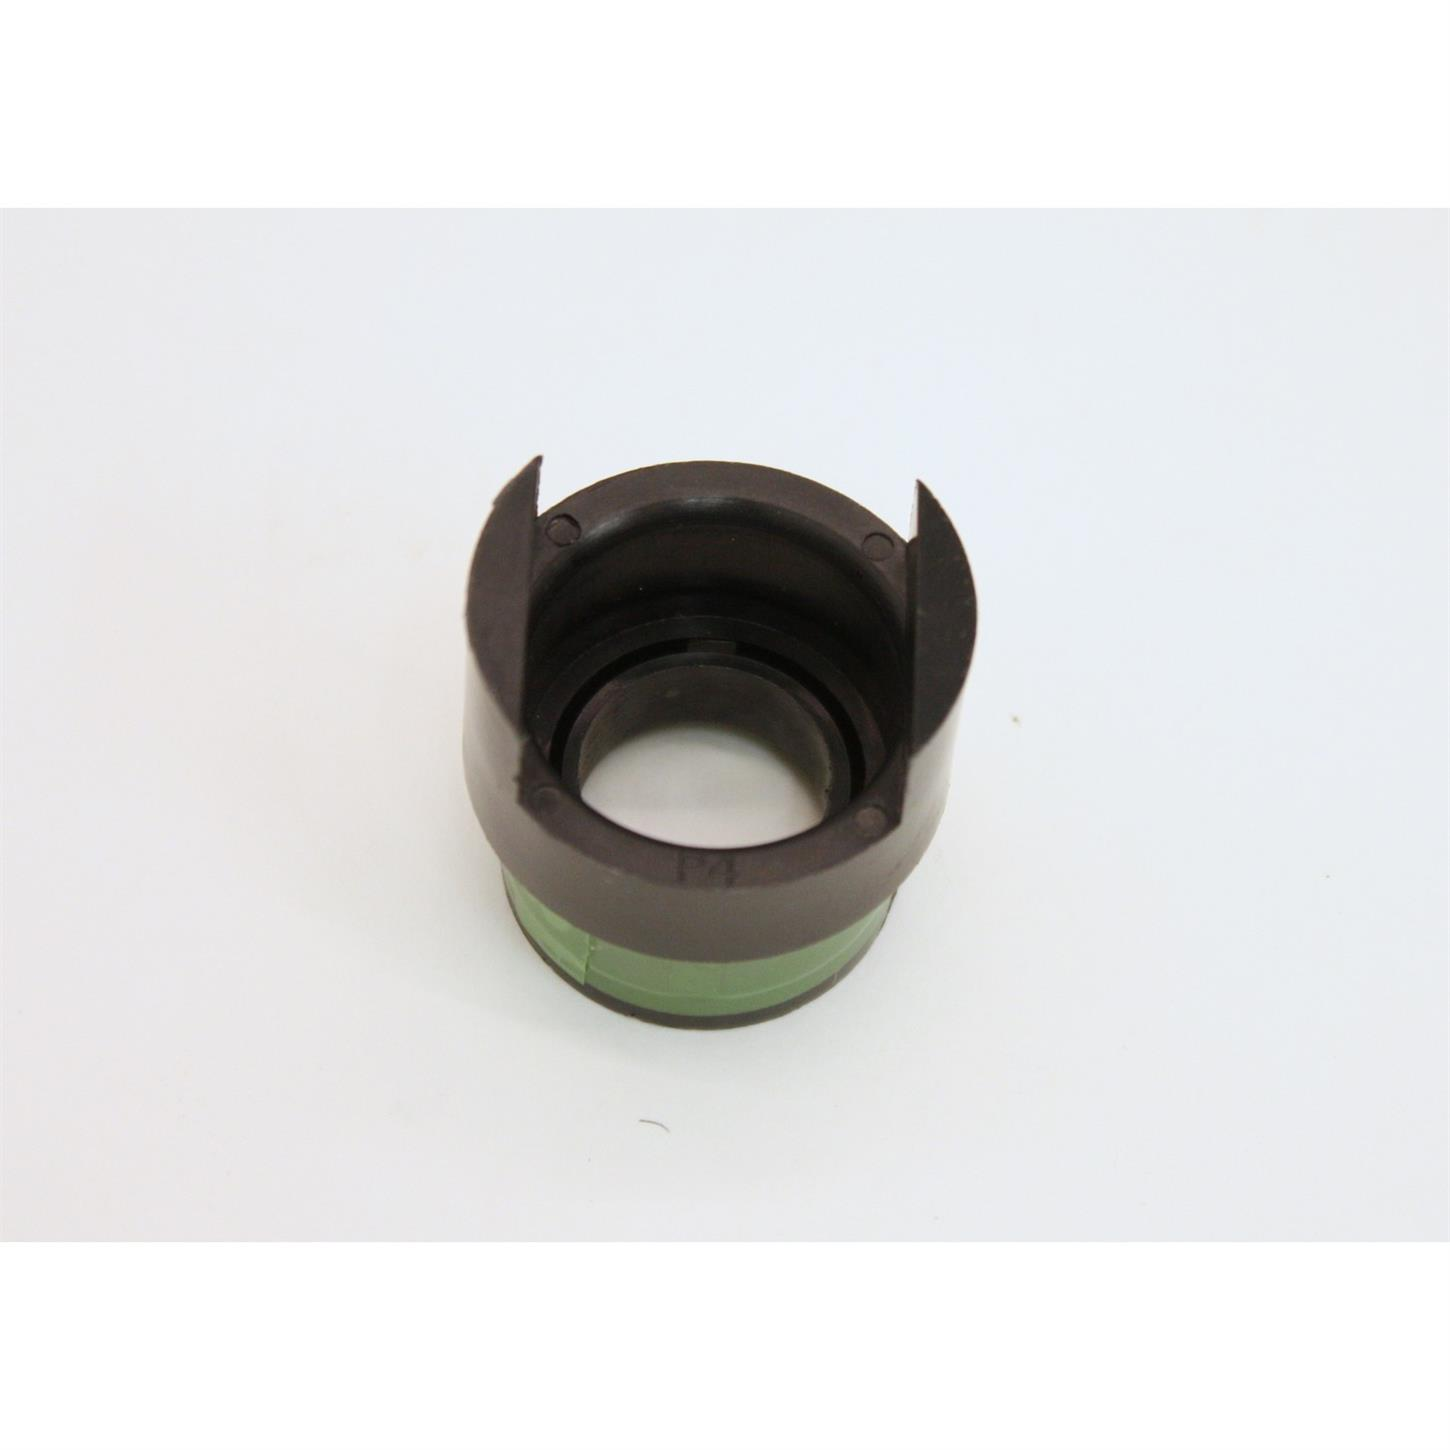 PerTronix 1244A3 Magnet Sleeve For 1244A Parts & Accessories